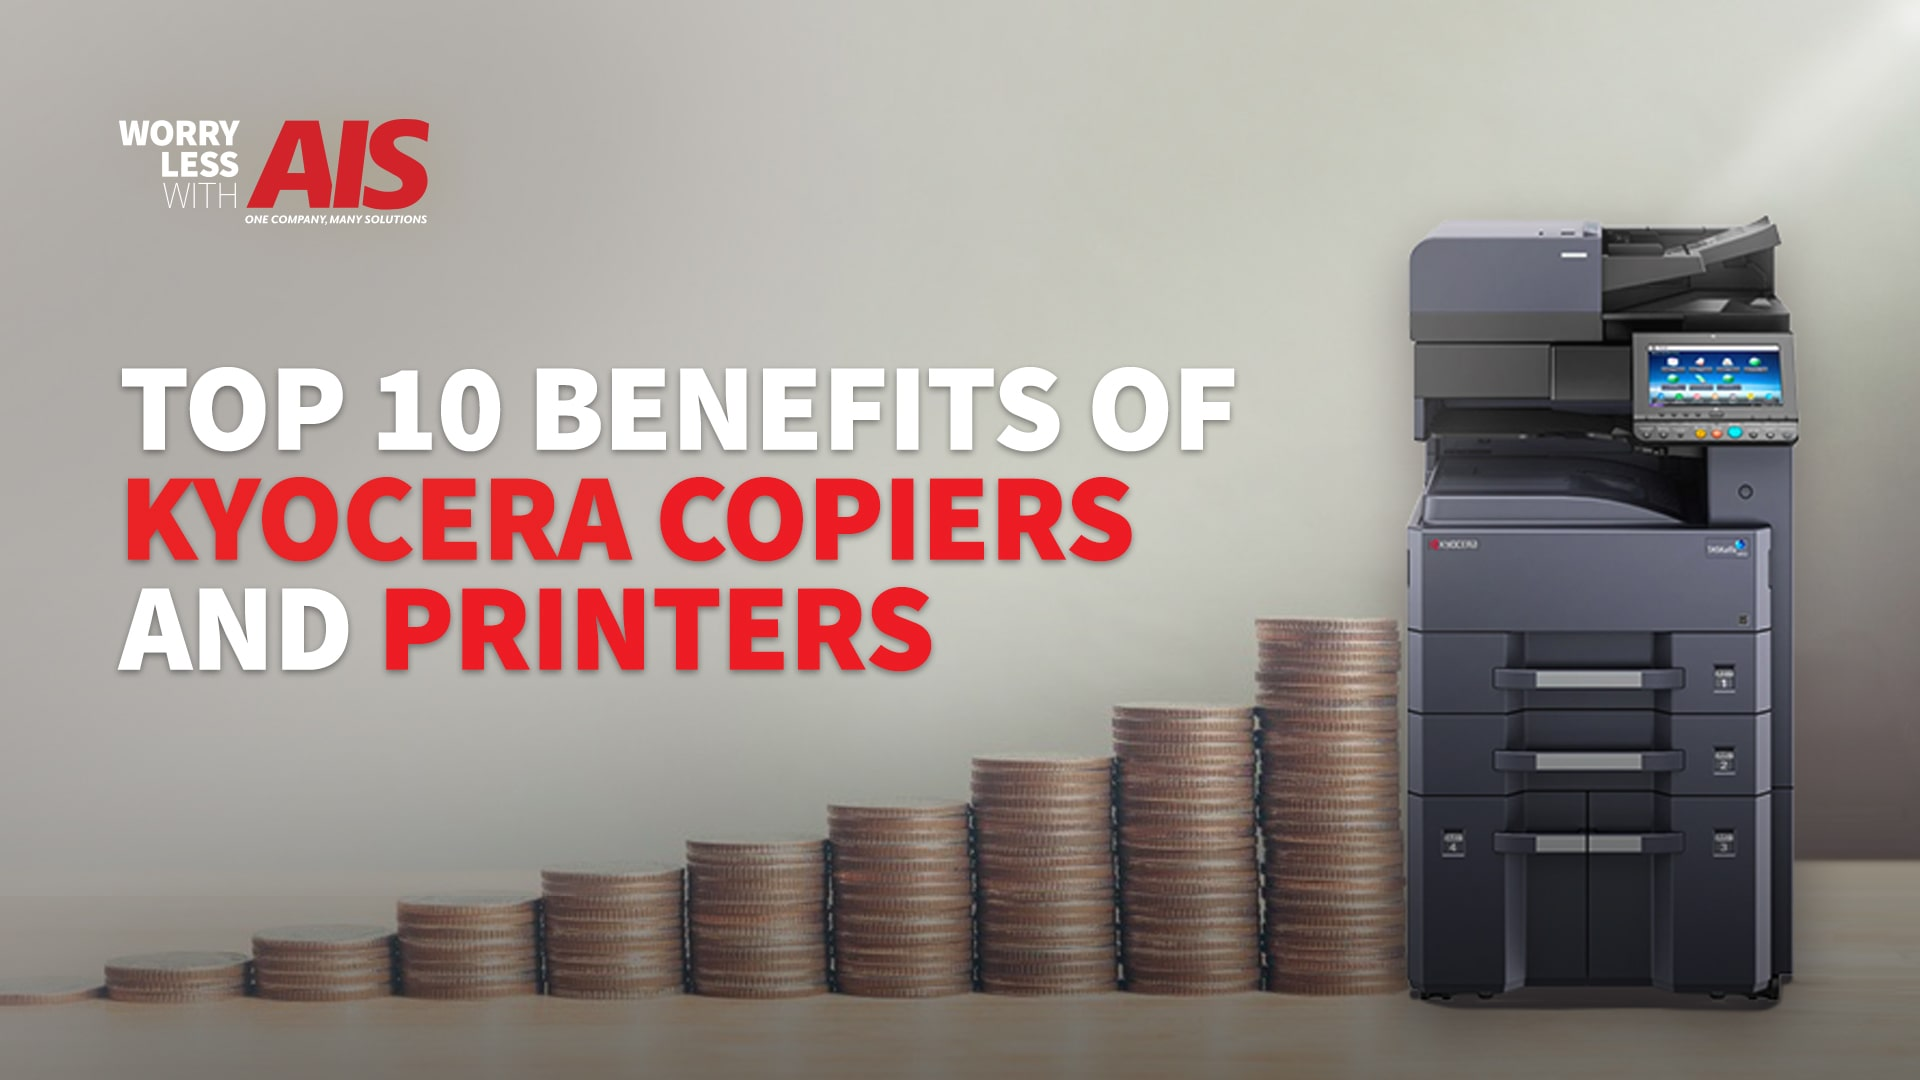 Top 10 Benefits of Kyocera Copiers and Printers